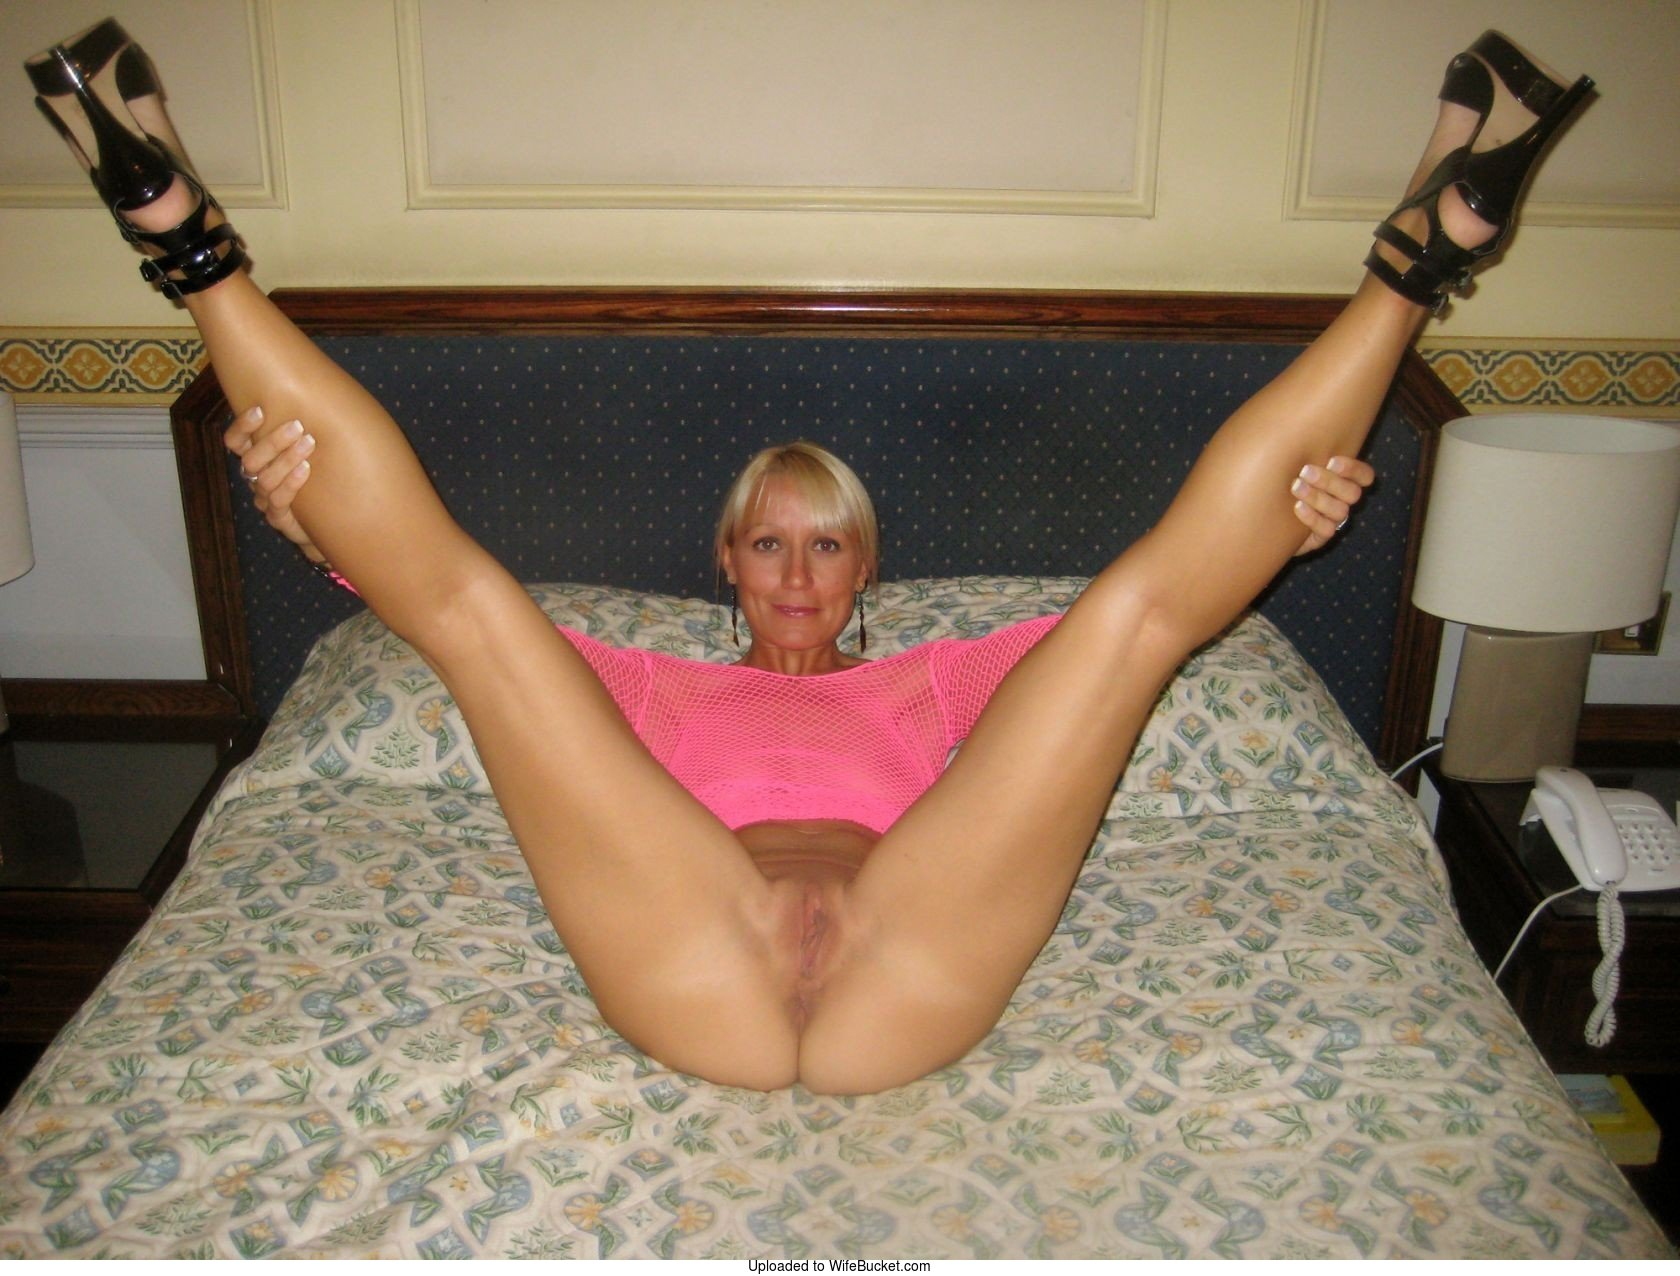 Real amateur wife nude posing